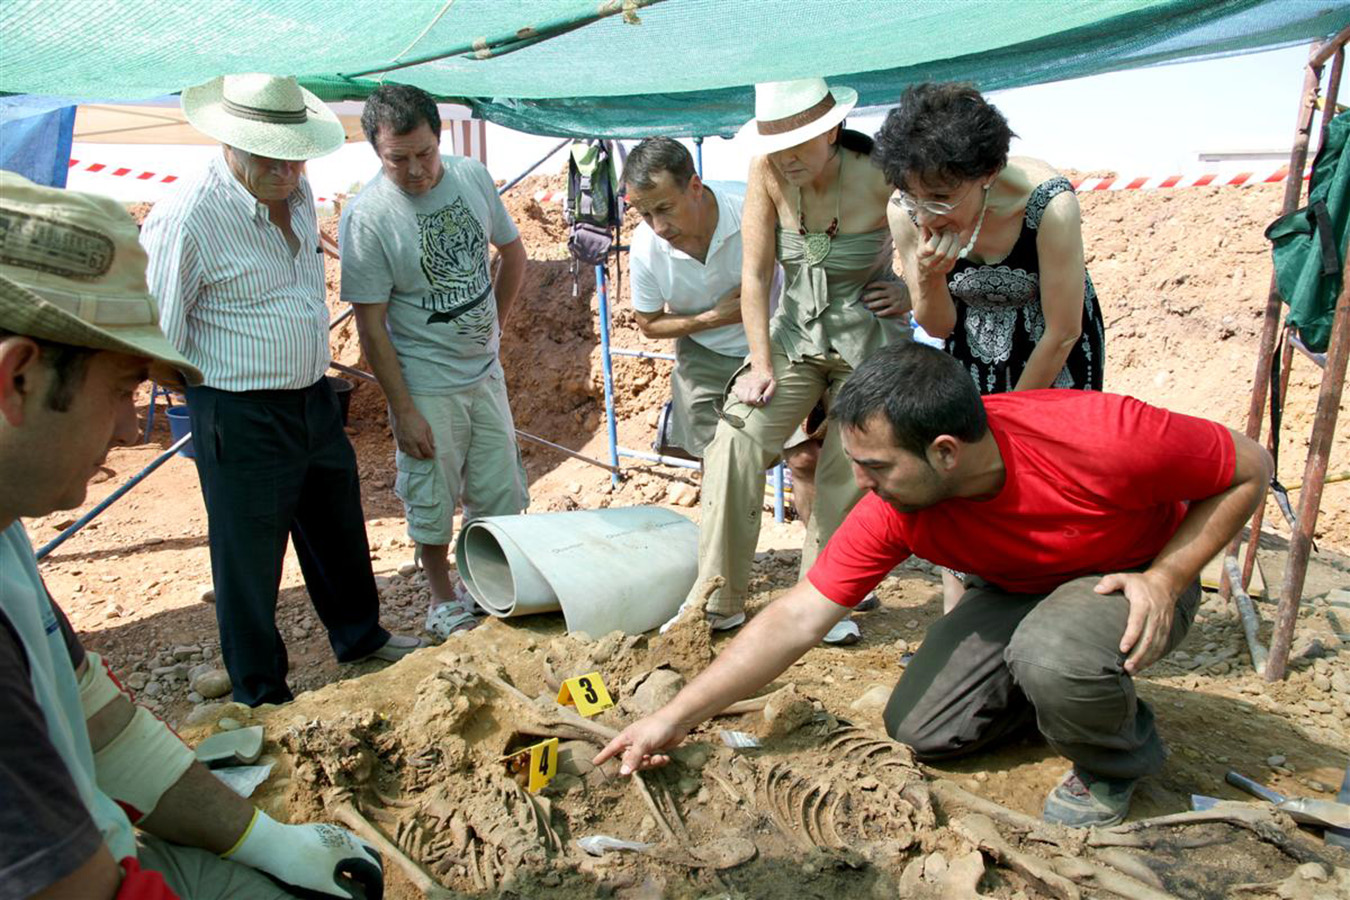 ARMH lead archaeologist René Pacheco points out forensic details to visitors and relatives of the disappeared during a forensic seminar. Photo by Óscar Rodríguez, 2011.